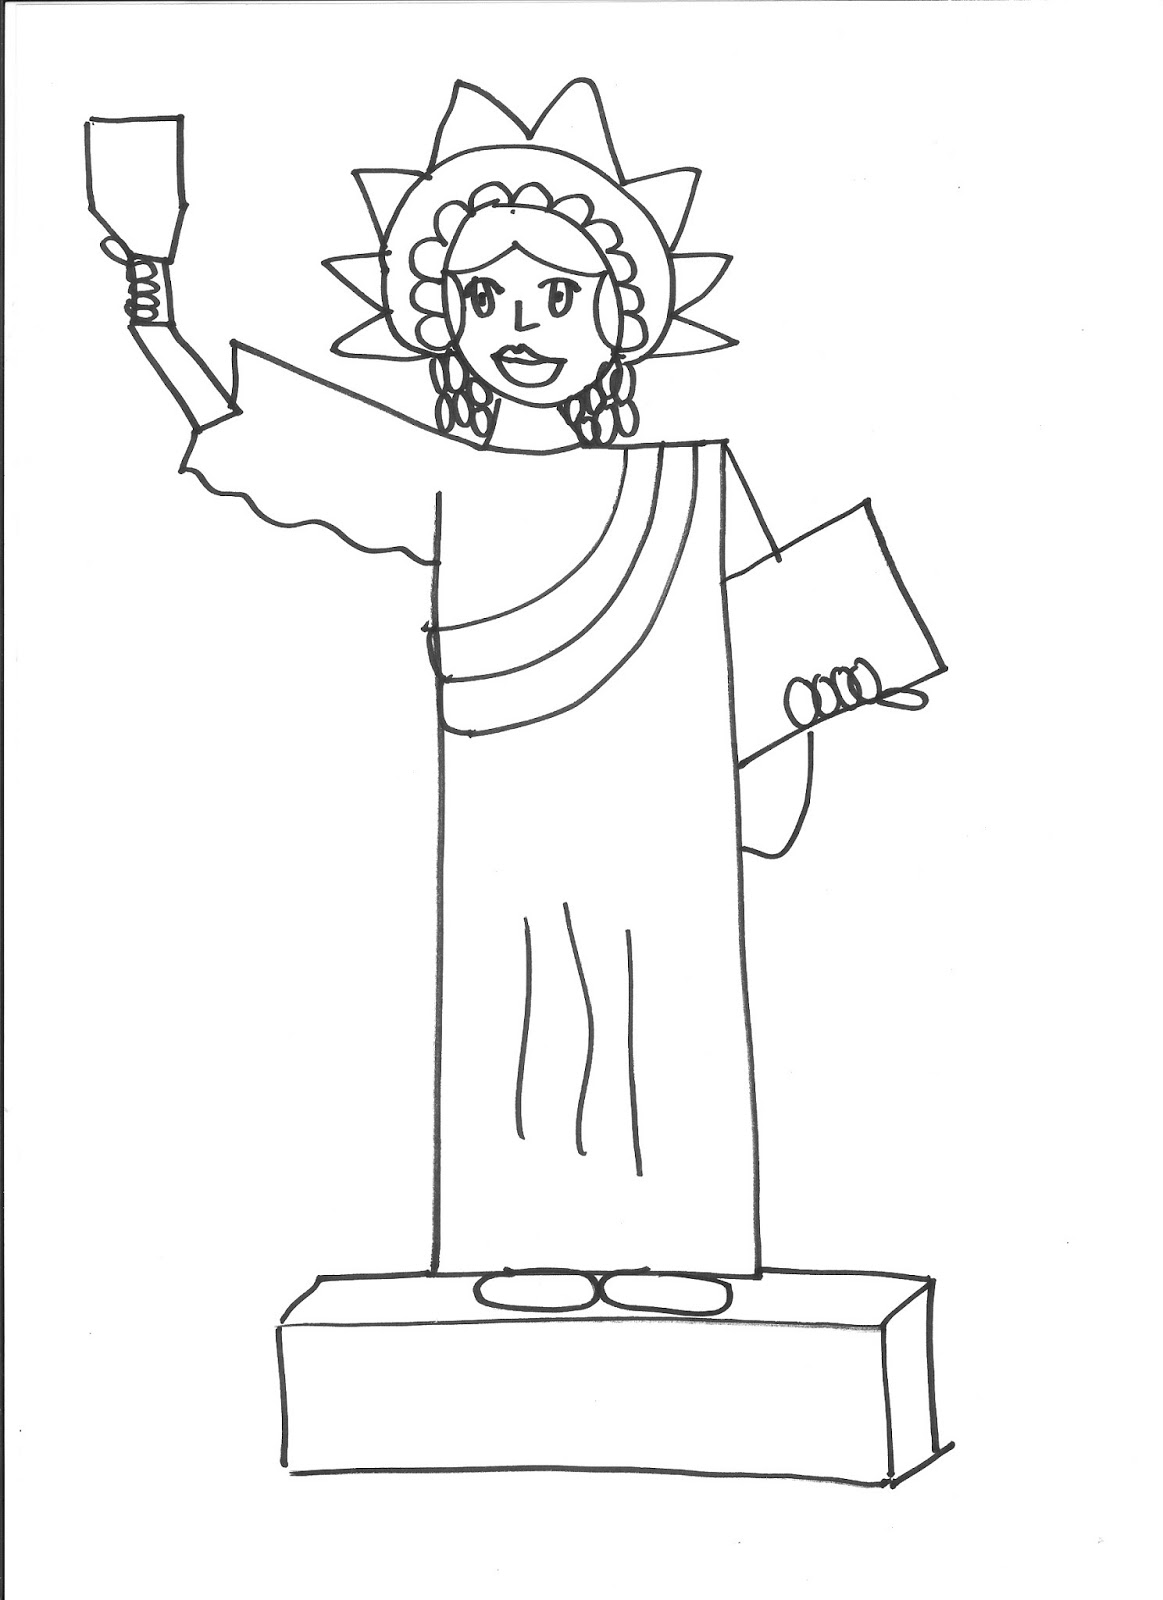 Statue Of Liberty Drawing Step By Step Outside the Box How I Taught First Graders to Draw the